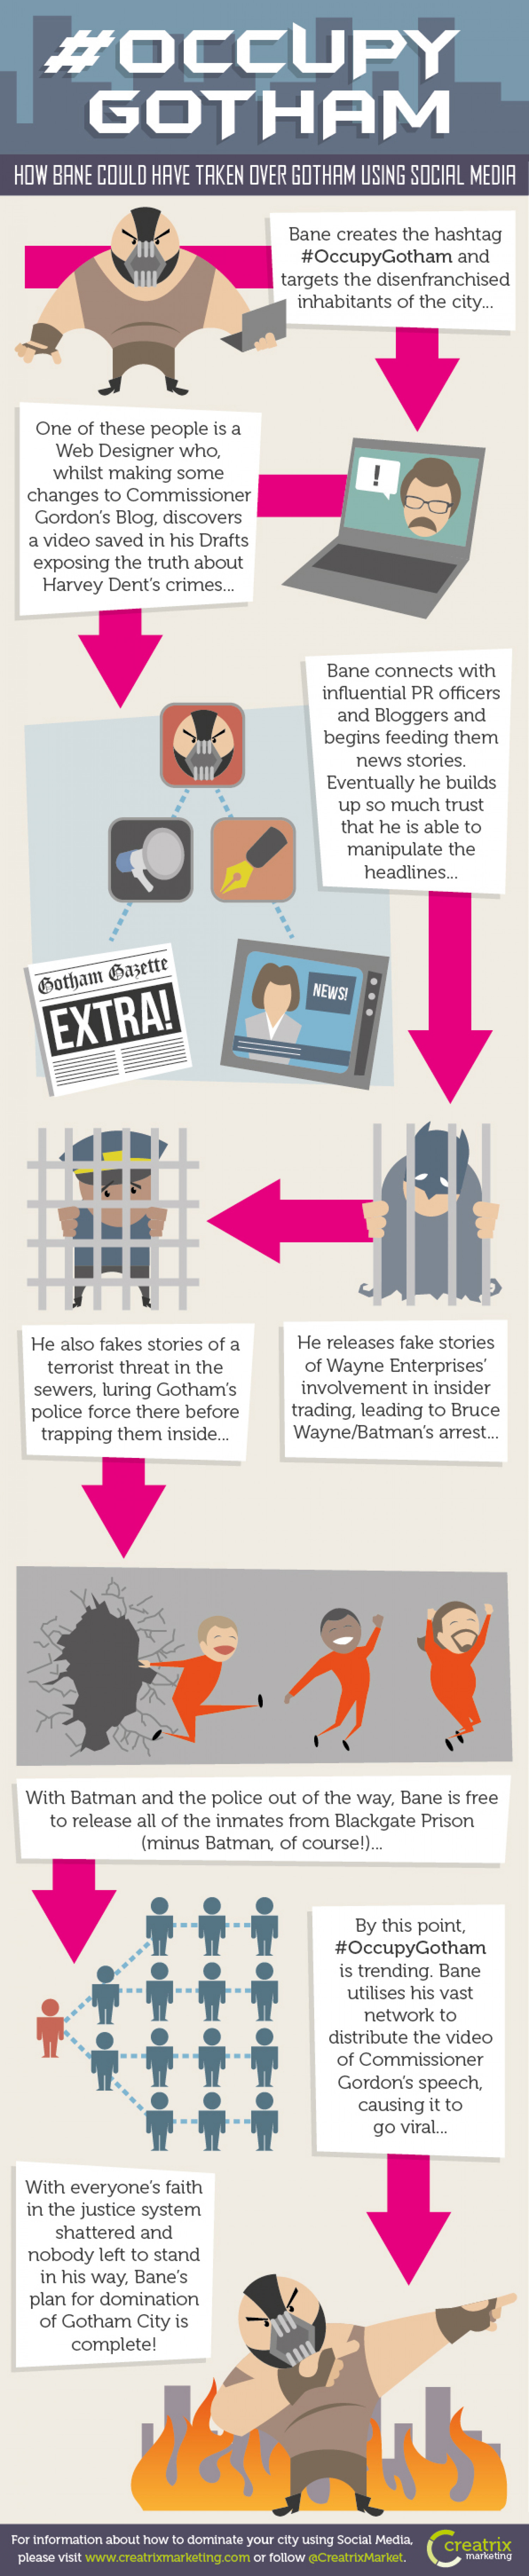 #Occupygotham Infographic